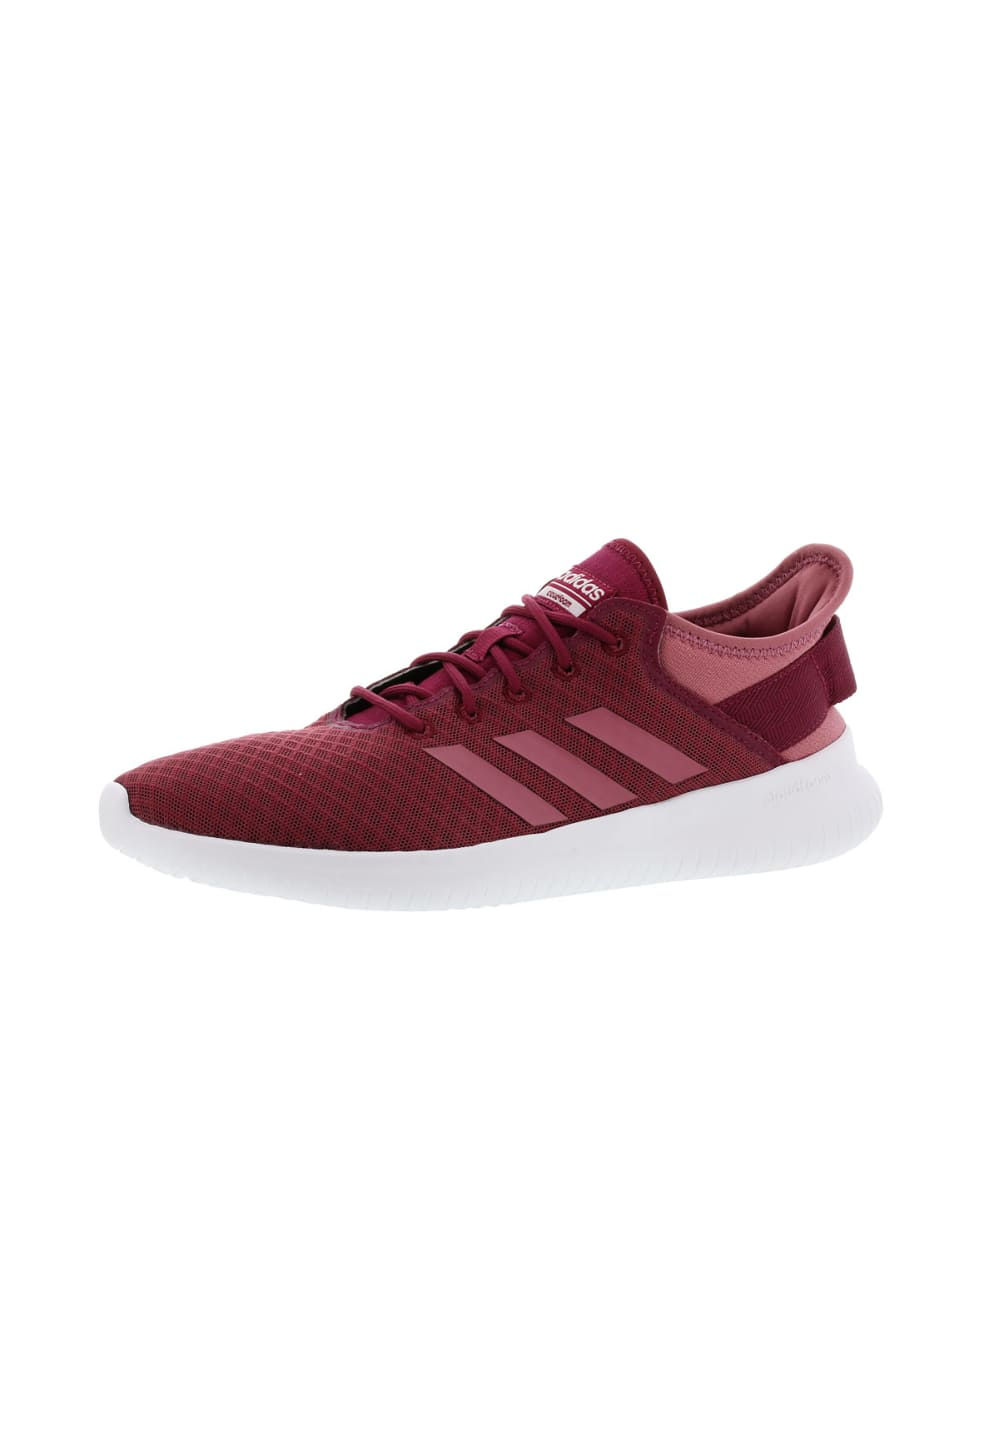 d05041564dd9d5 Next. -60%. This product is currently out of stock. adidas neo. Cloudfoam  QT Flex - Running shoes for Women